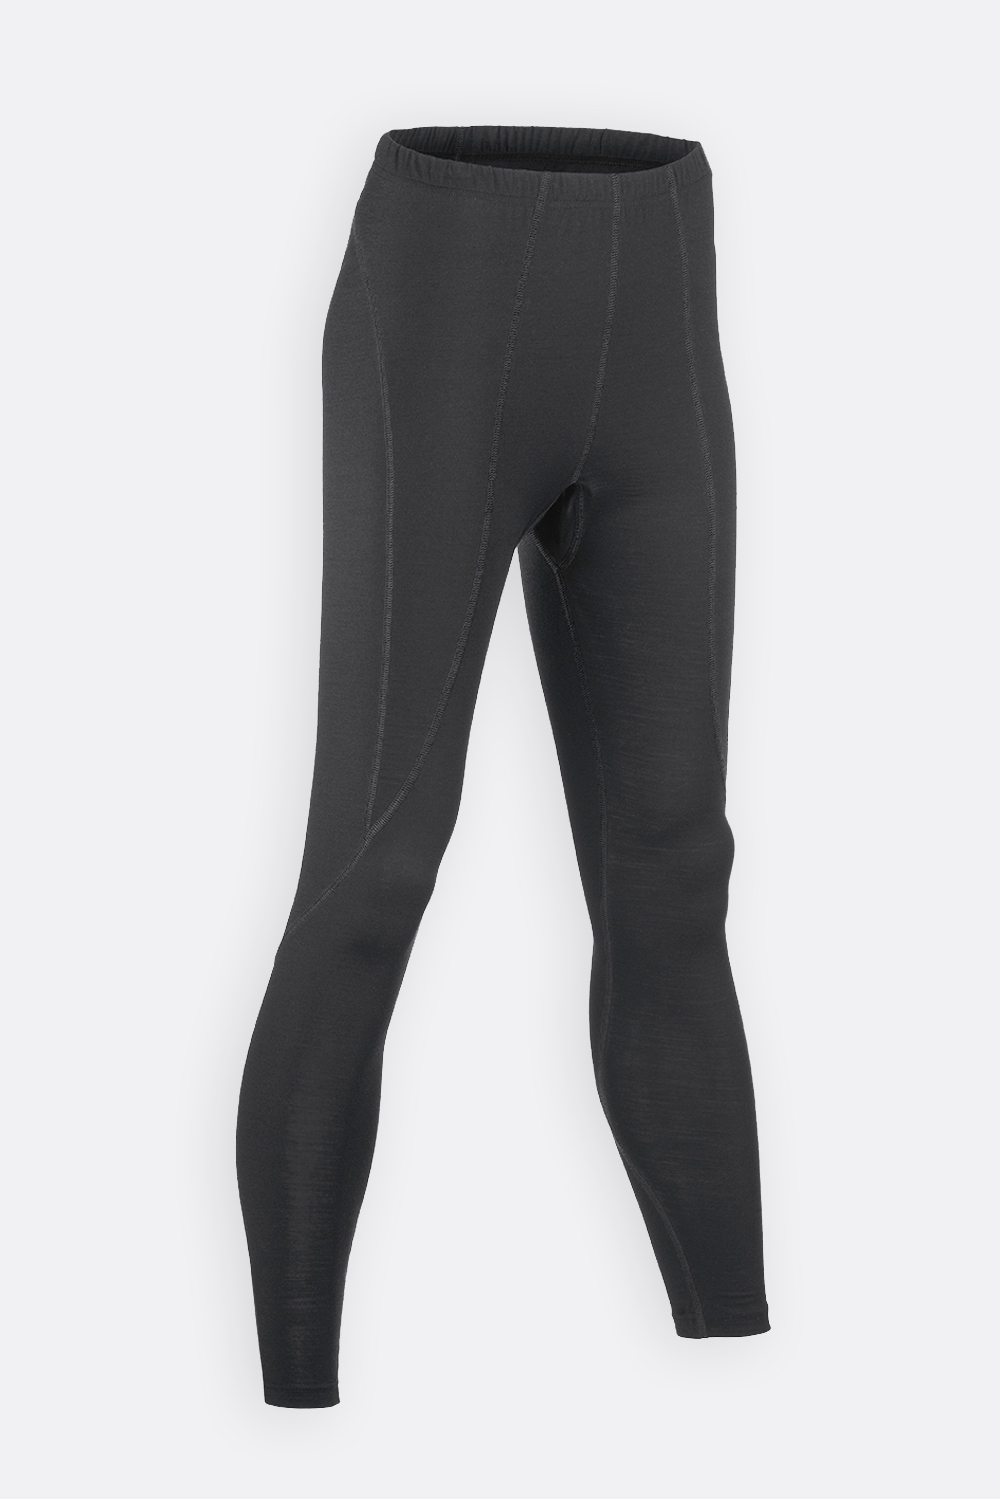 Damen Leggings, lang